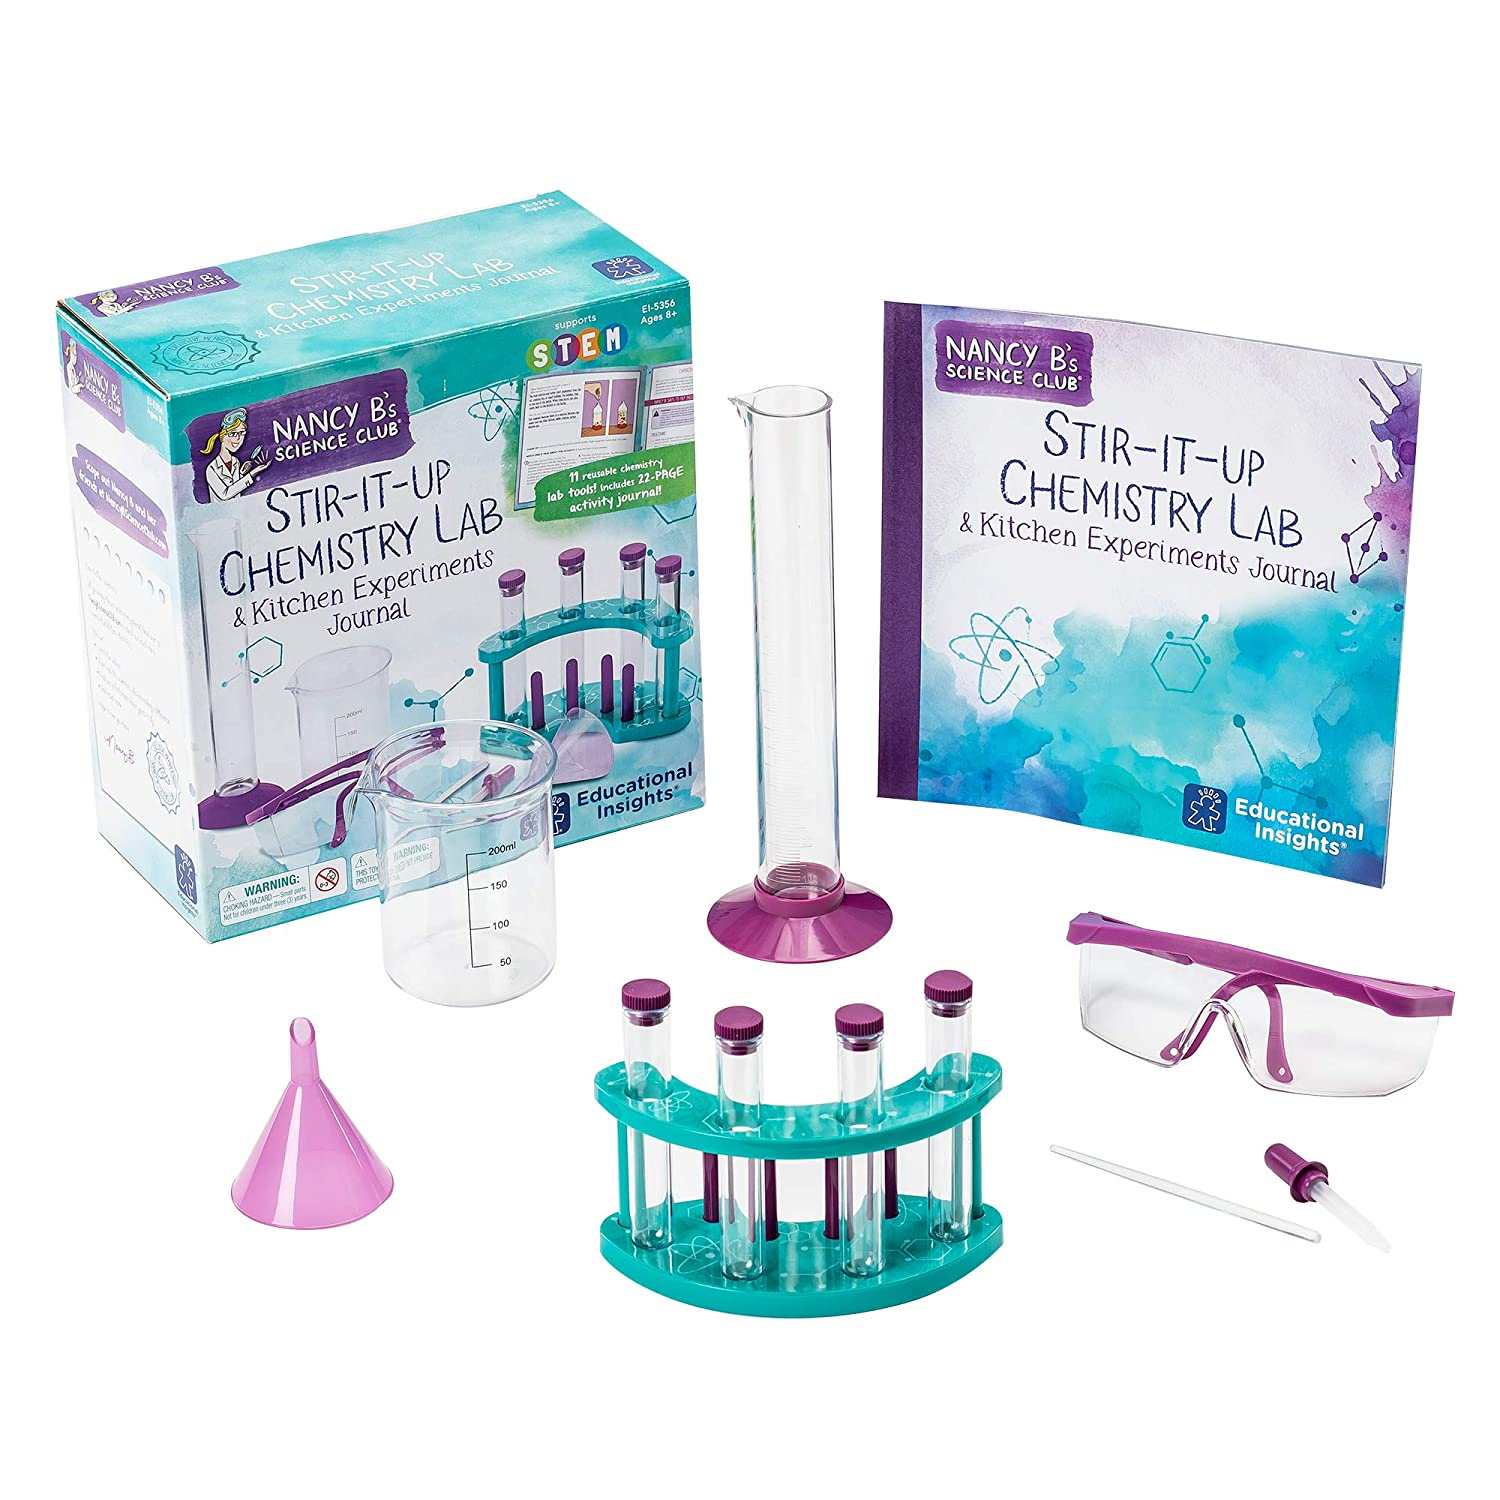 Top 13 Best Chemistry Set for Kids Reviews in 2020 13